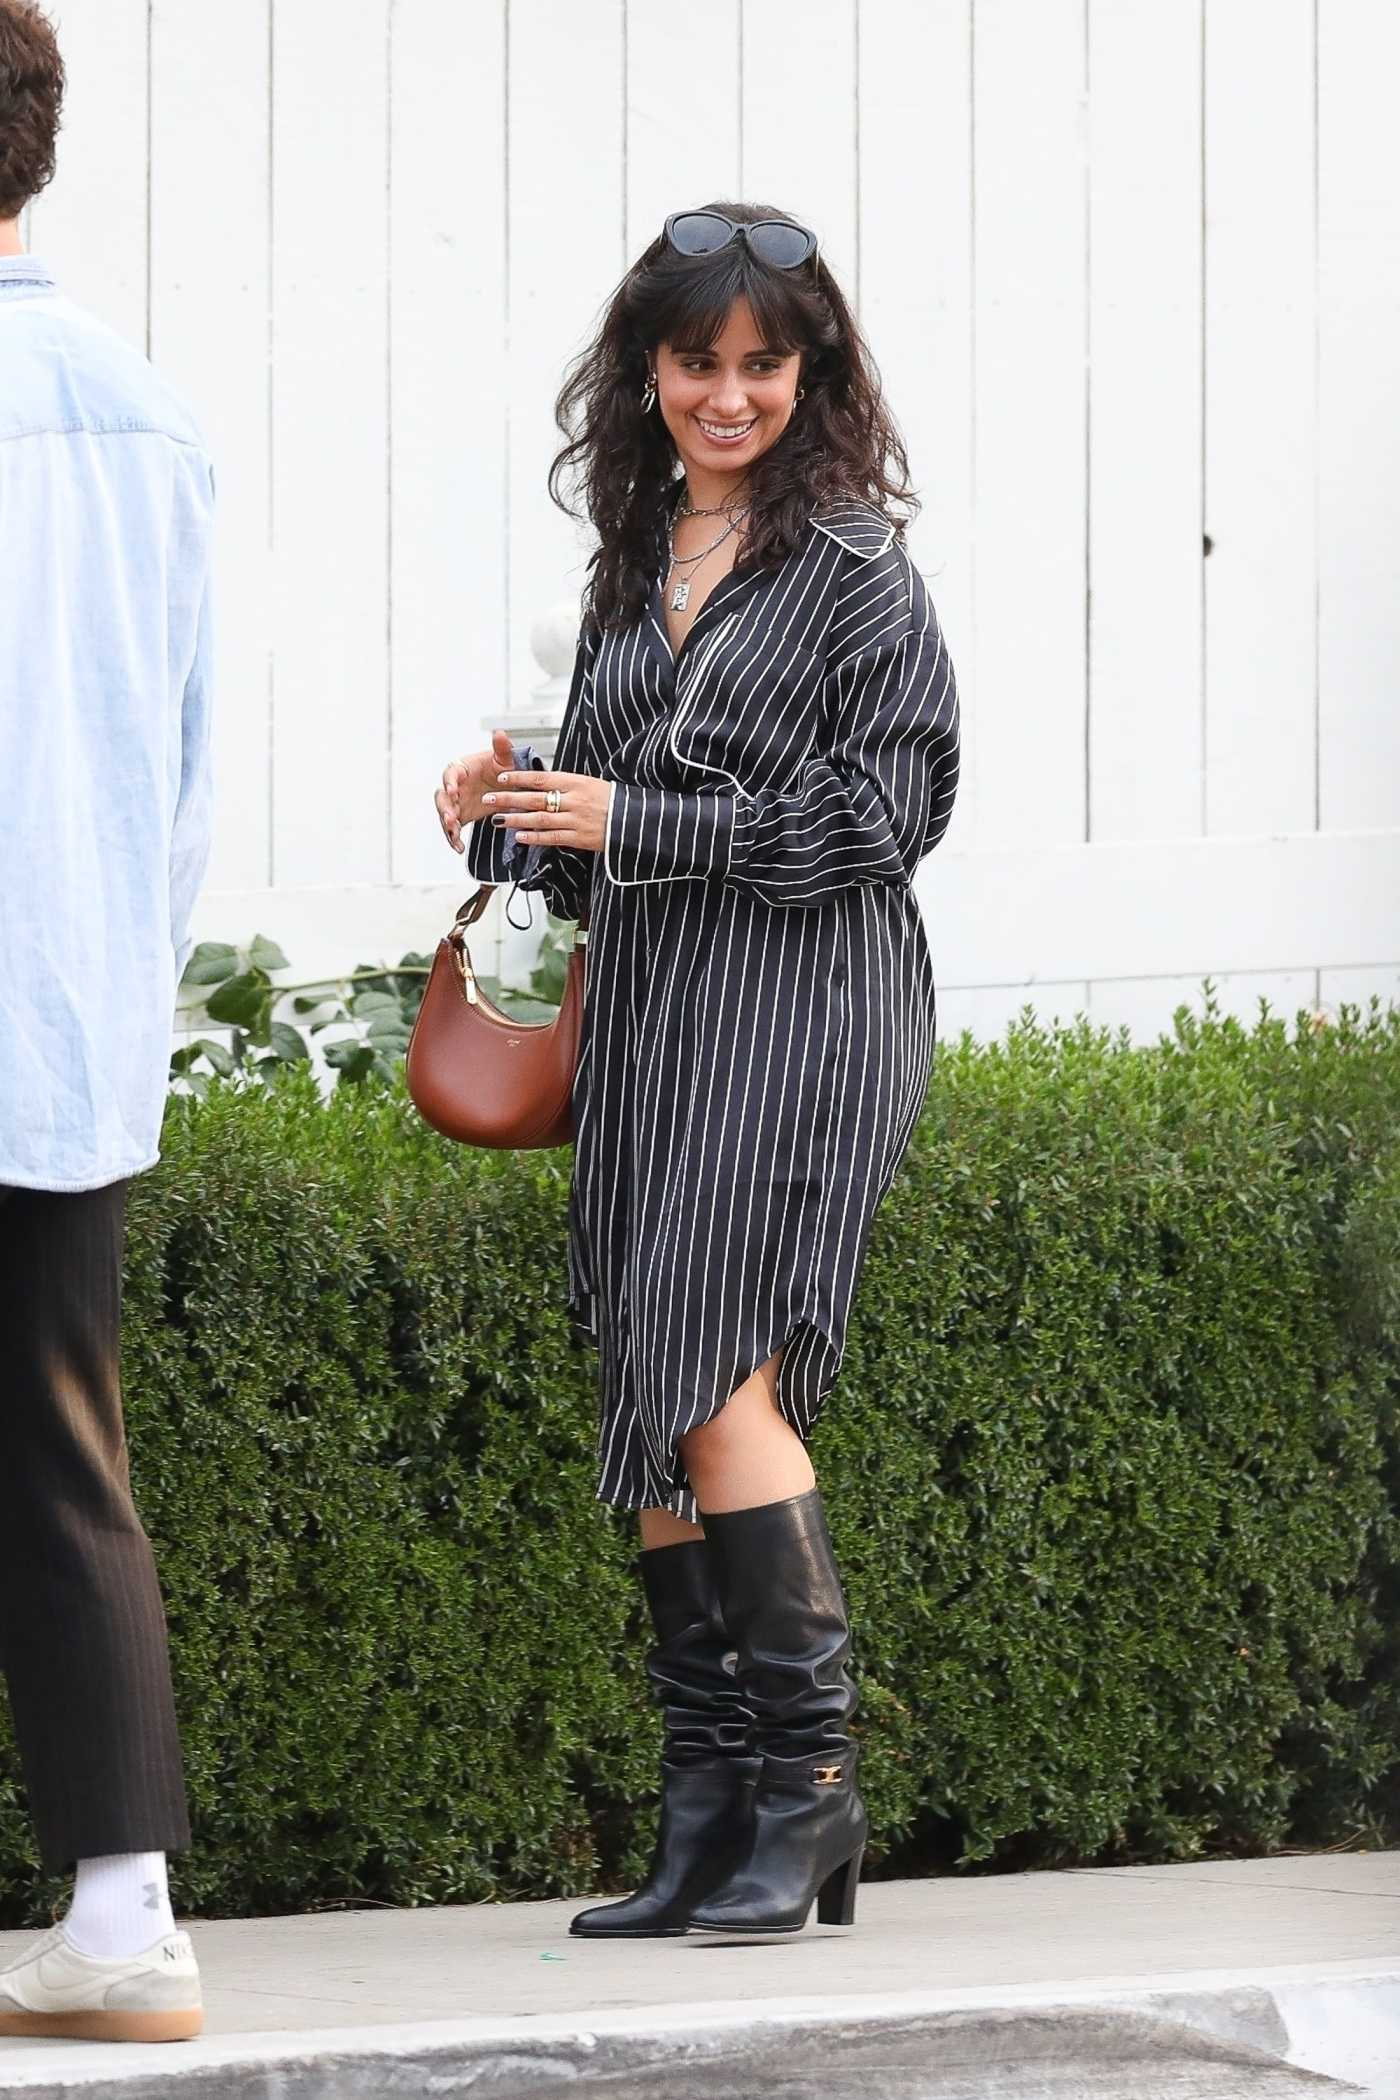 Camila Cabello in a Black Striped Dress Was Seen Out with Shawn Mendes in West Hollywood 05/25/2021